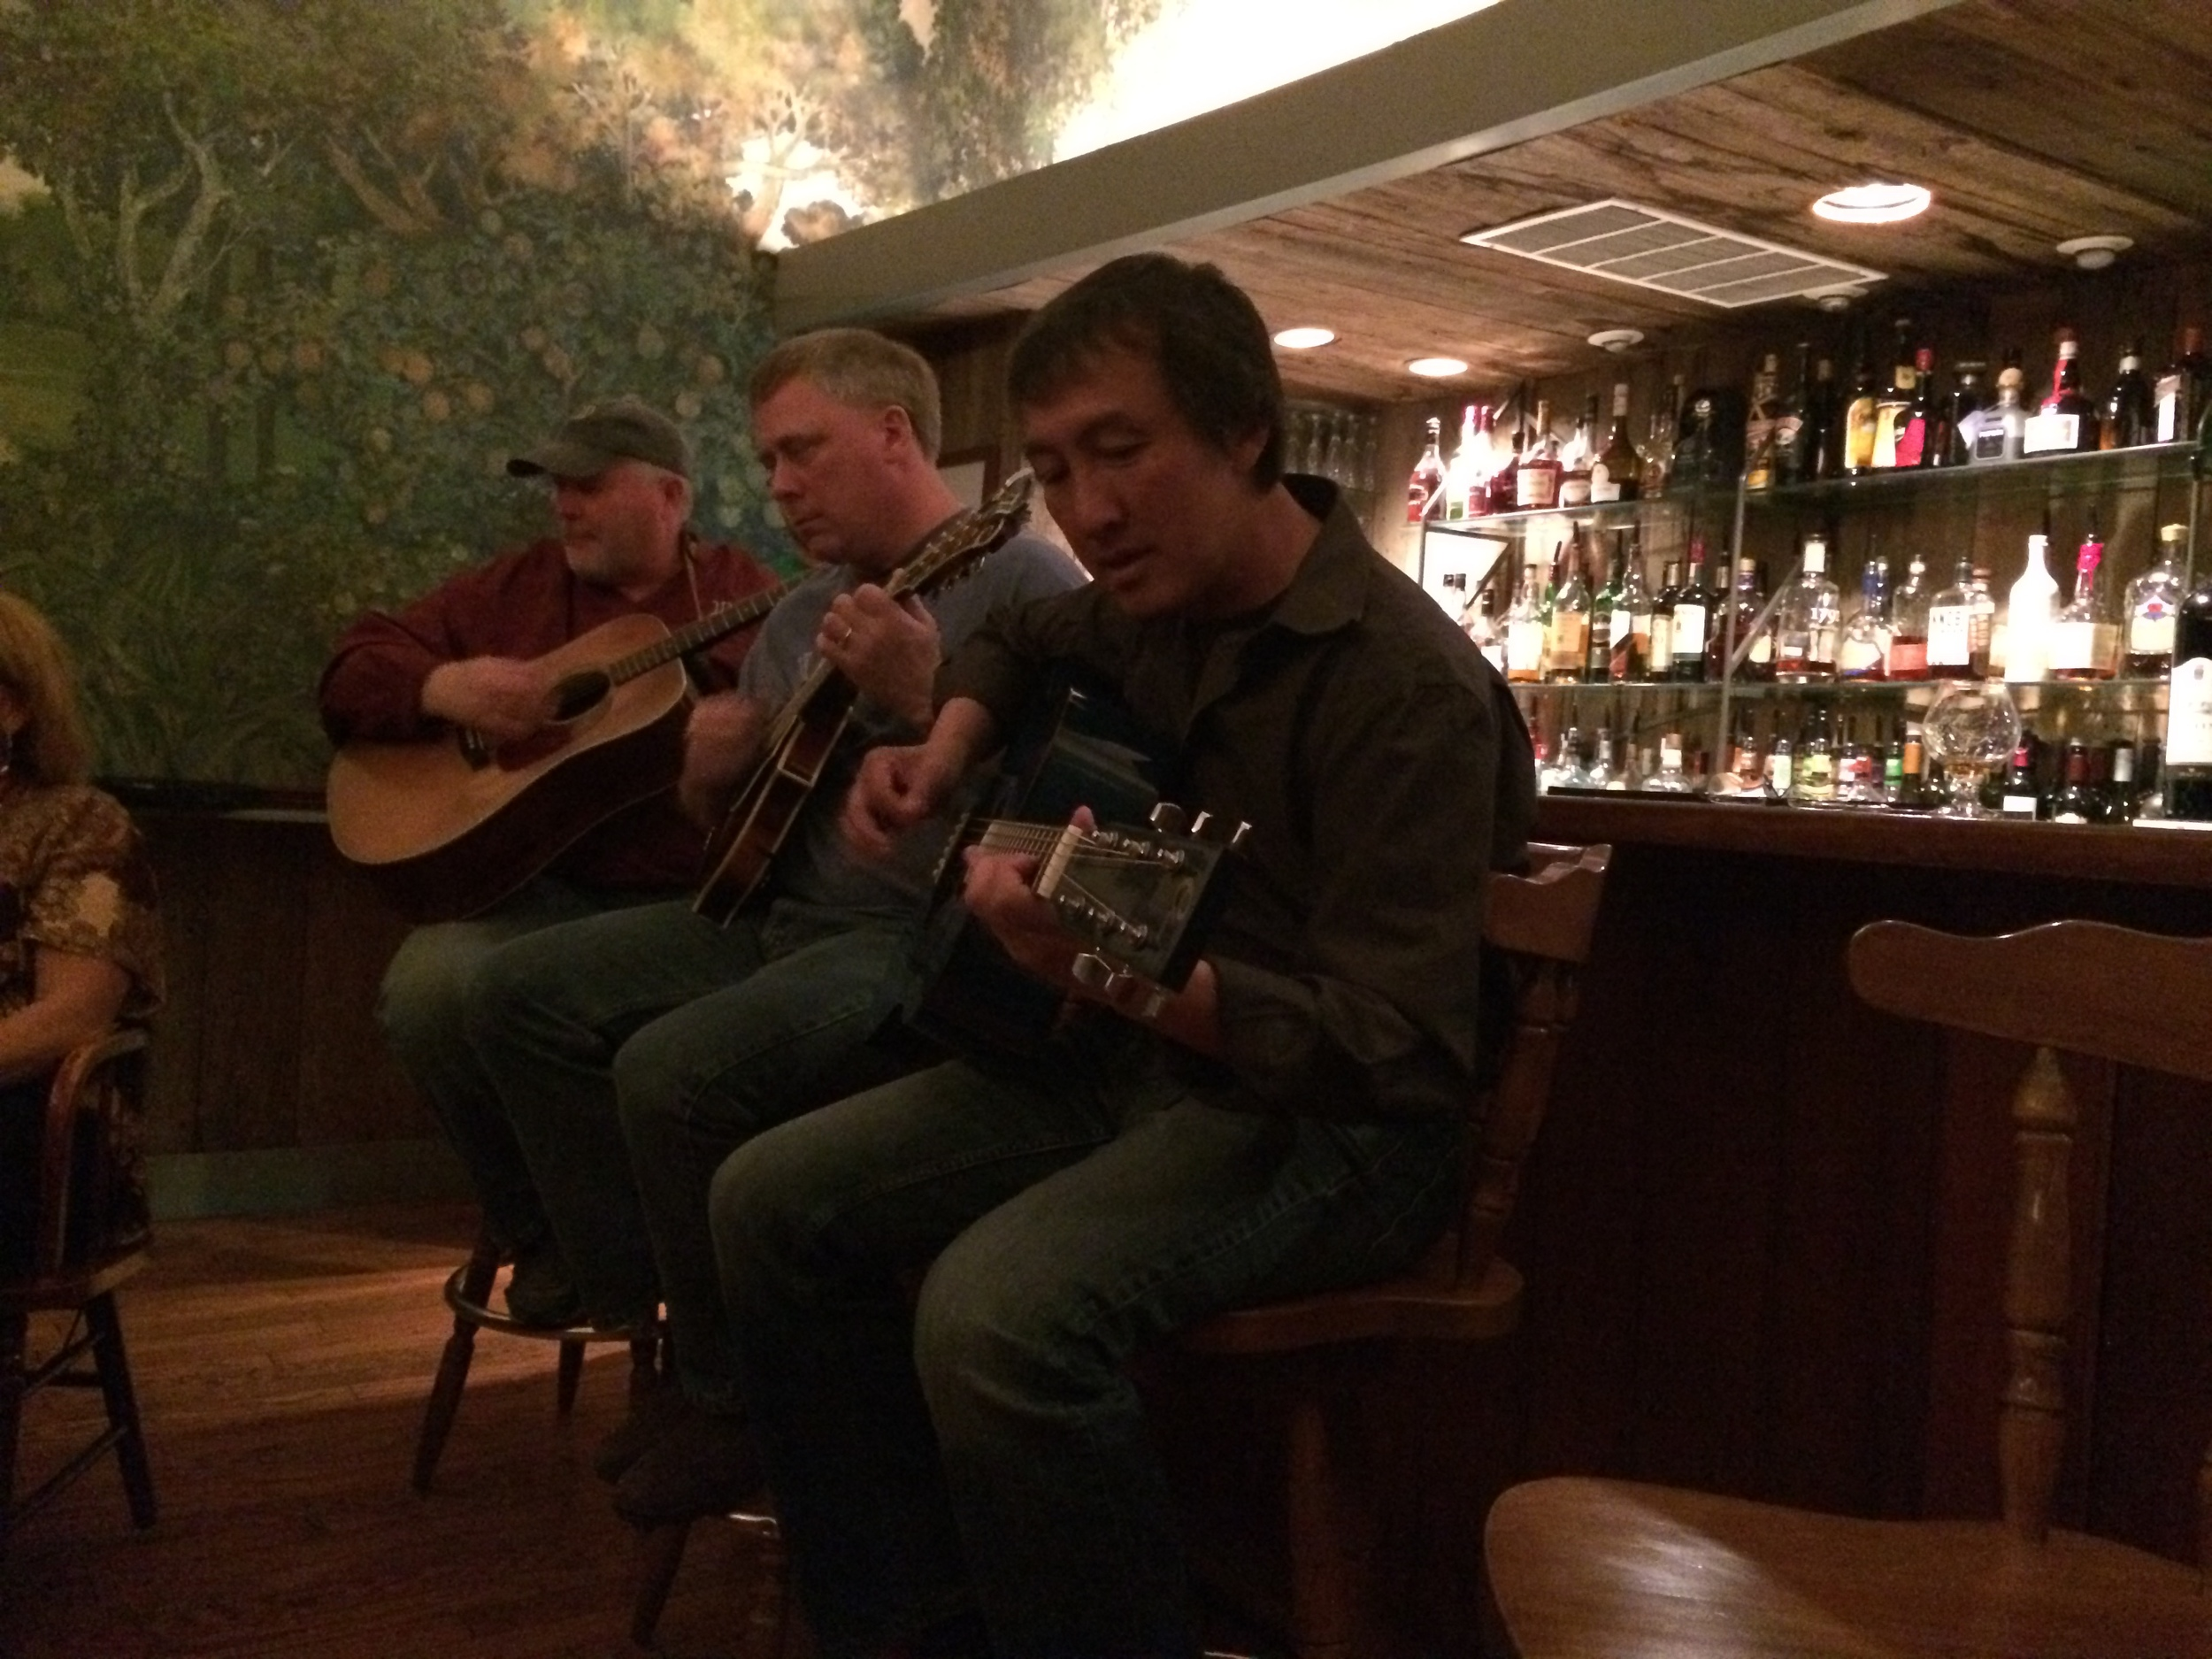 Rick Wilson (left) and Quang Ho (right) break out their guitars. I didn't meet the artist in the center, but he was a fantastic mandolin player!